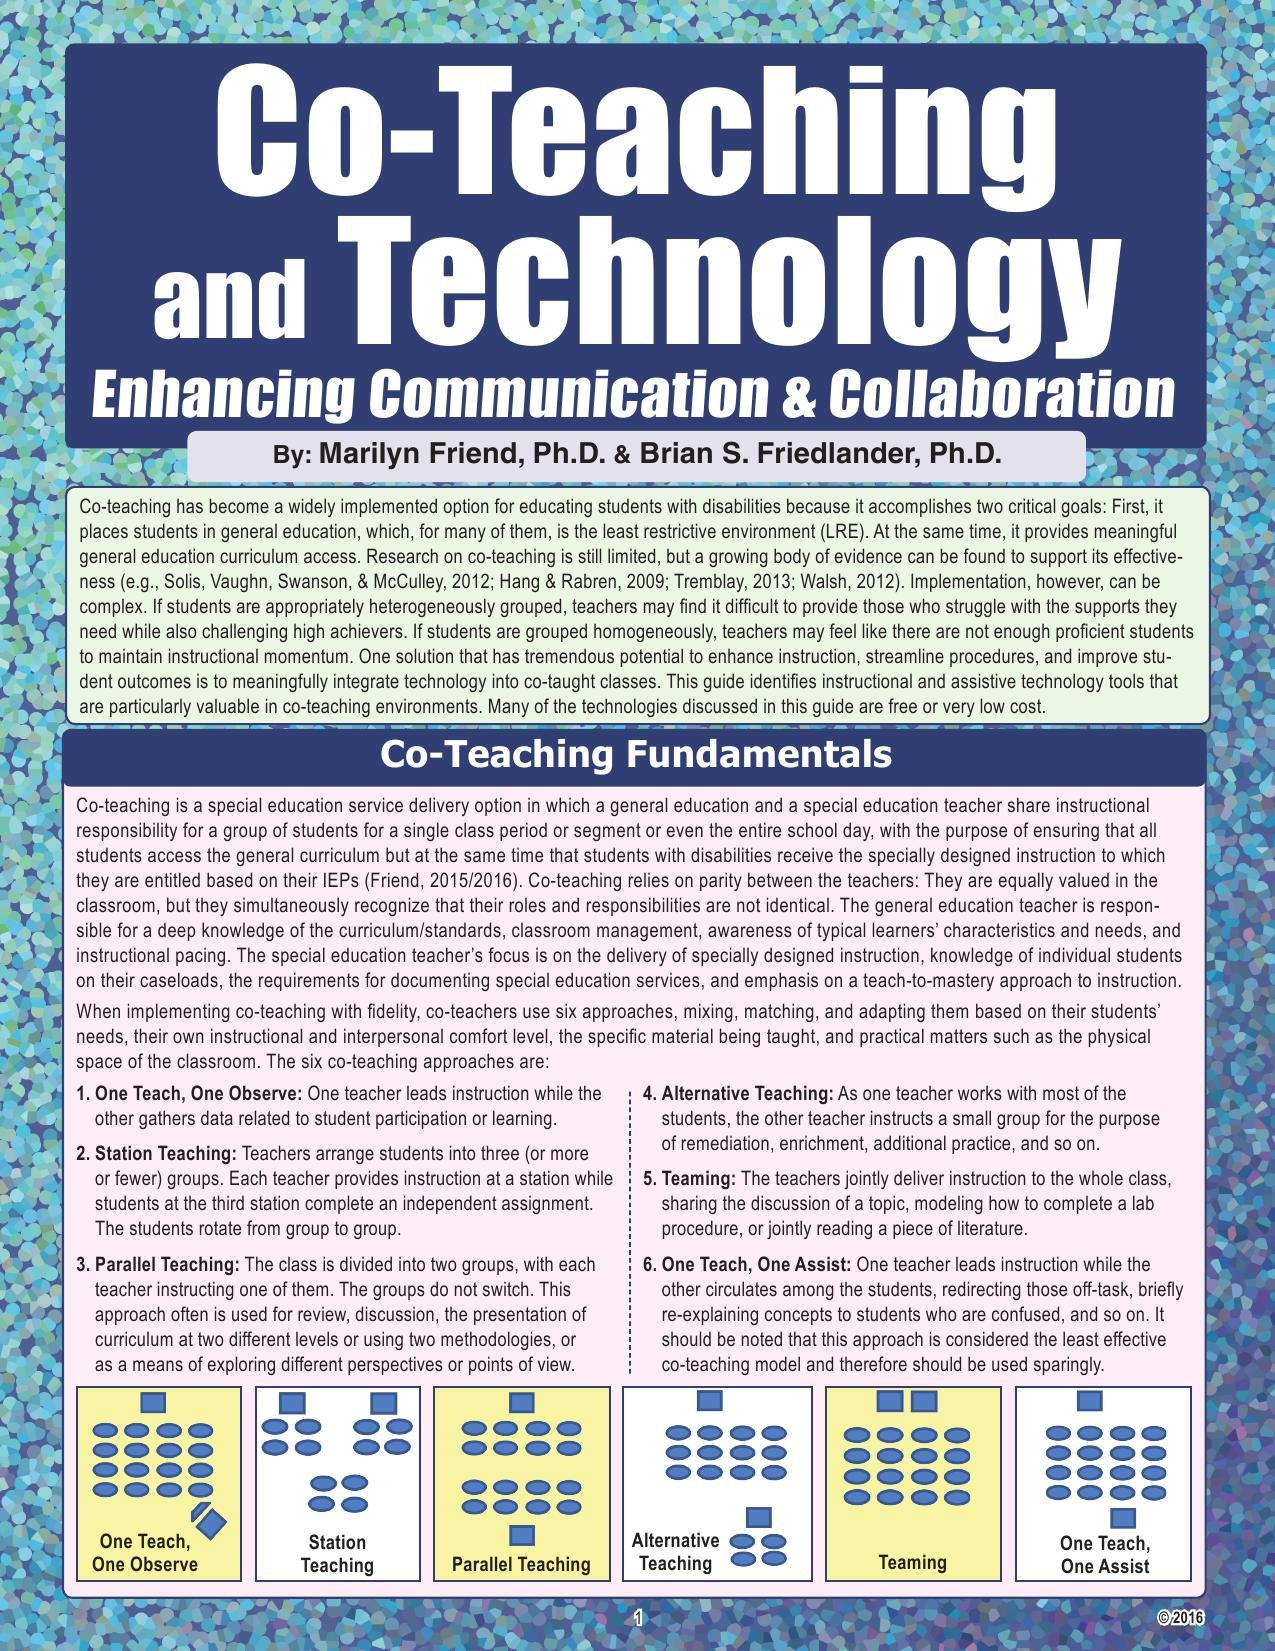 Co-teaching and Technology: Enhancing Communication & Collaboration PDF